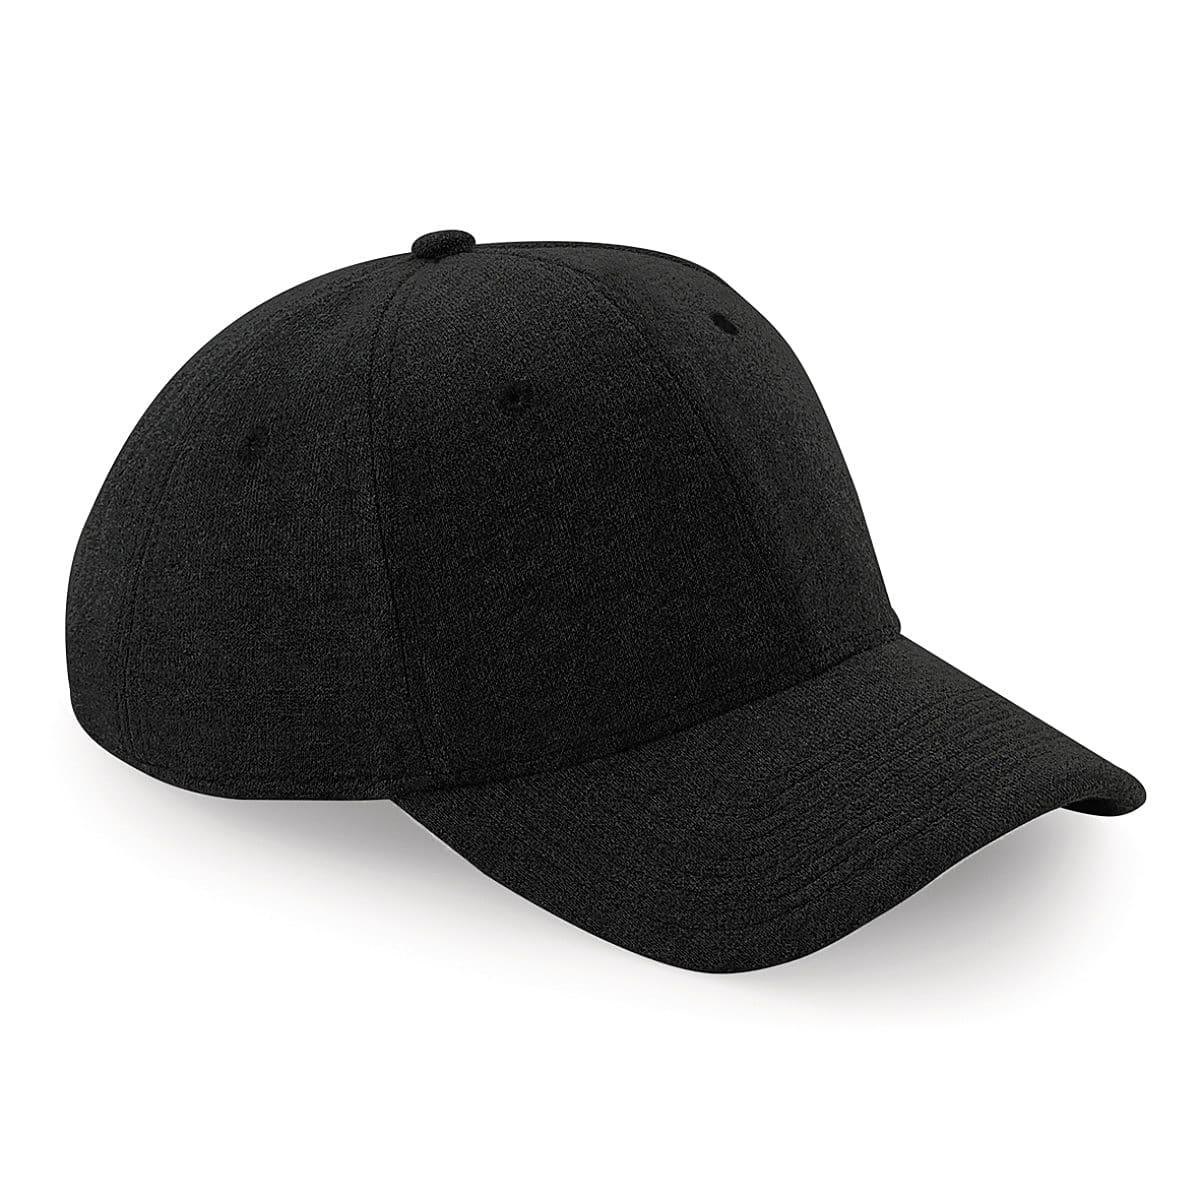 Beechfield Jersey Athleisure Cap in Black (Product Code: B677)